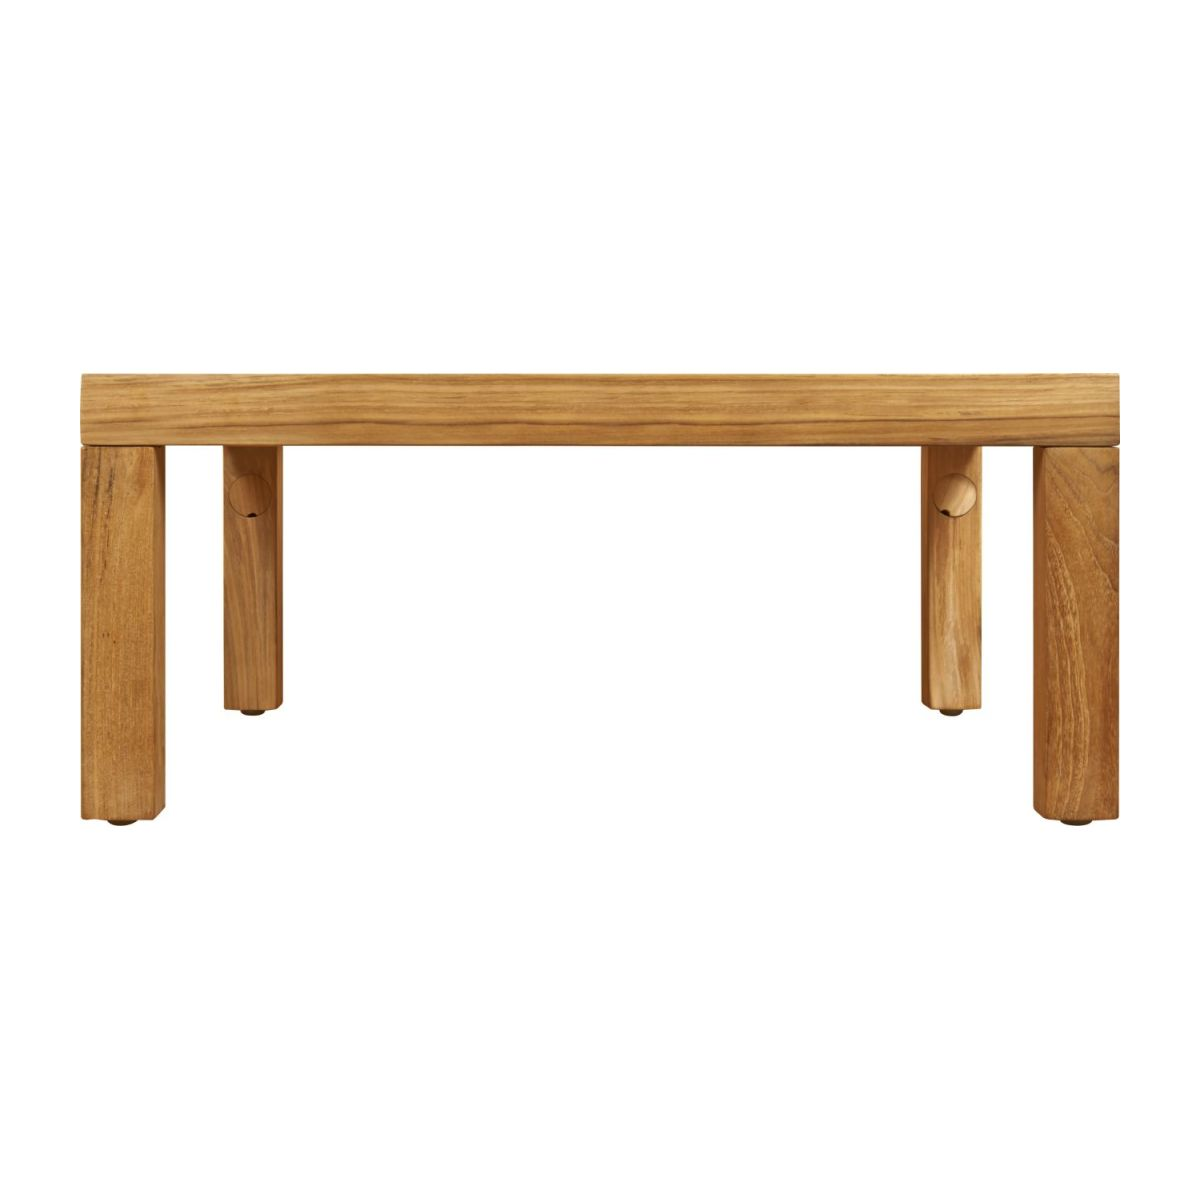 Table basse de jardin en teck -Naturel - 70 x 70 cm n°4